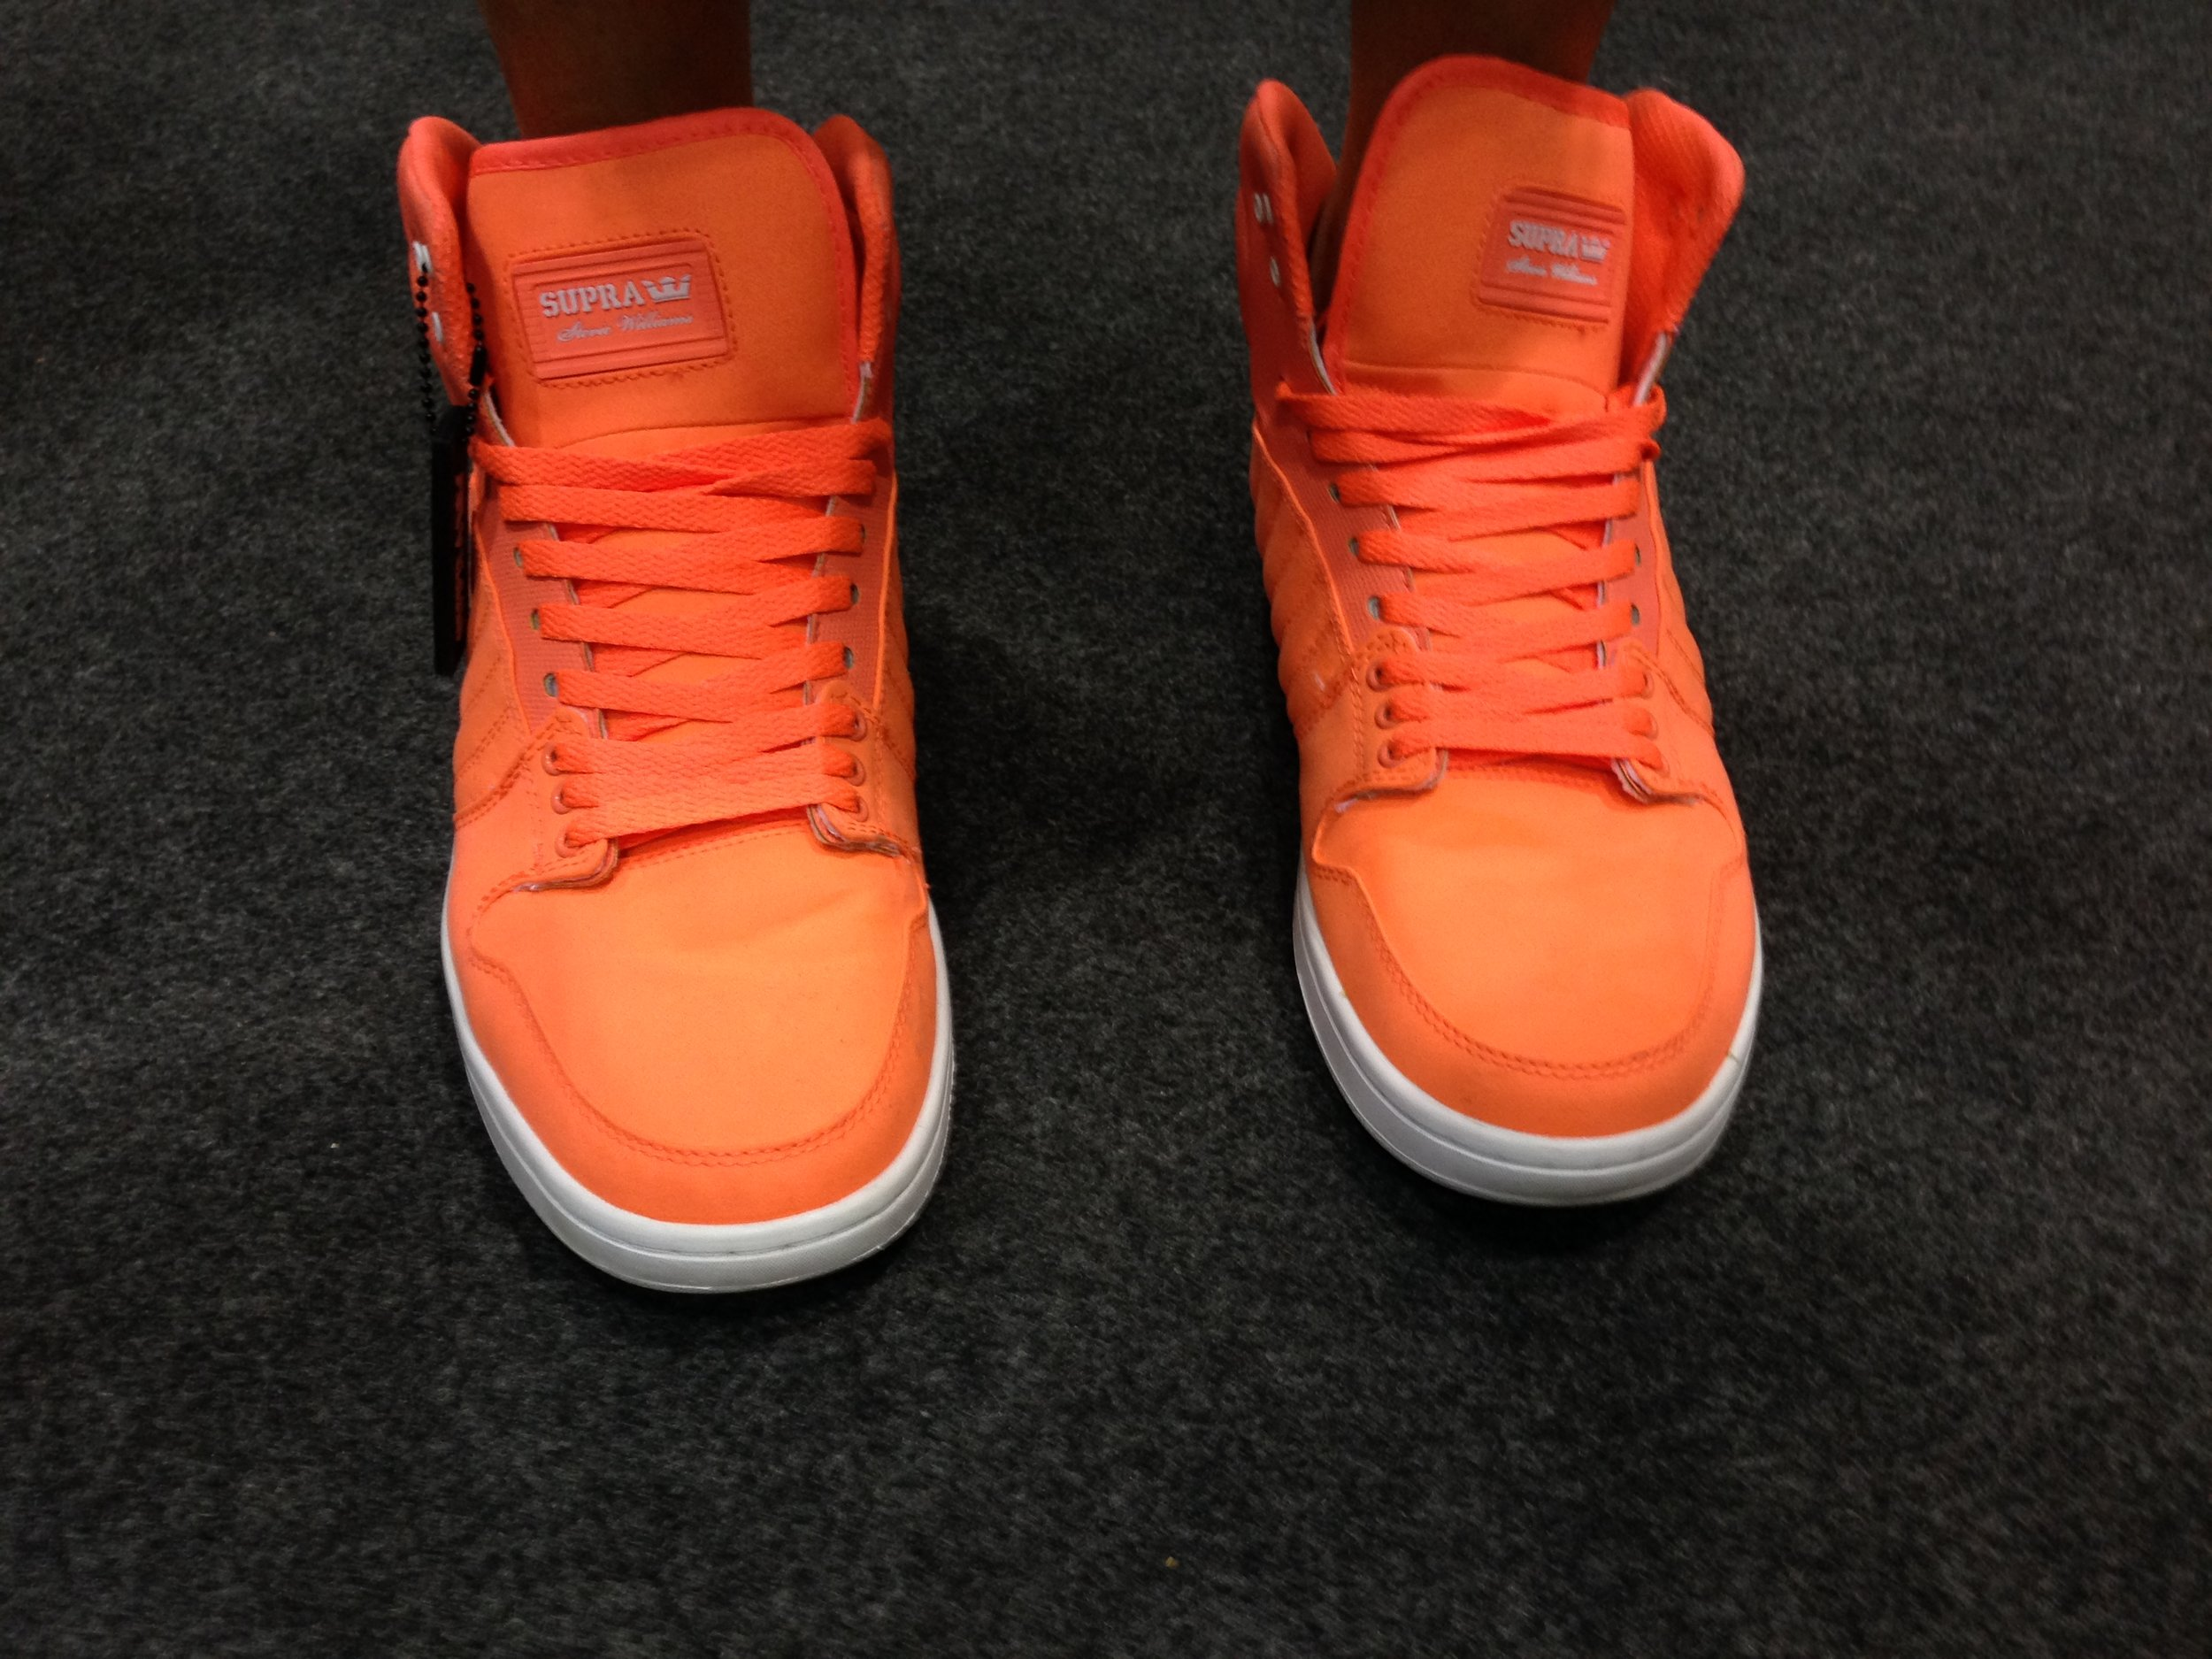 The end: the victory orange high-tops Lochte wore to the news conference after the epic triple